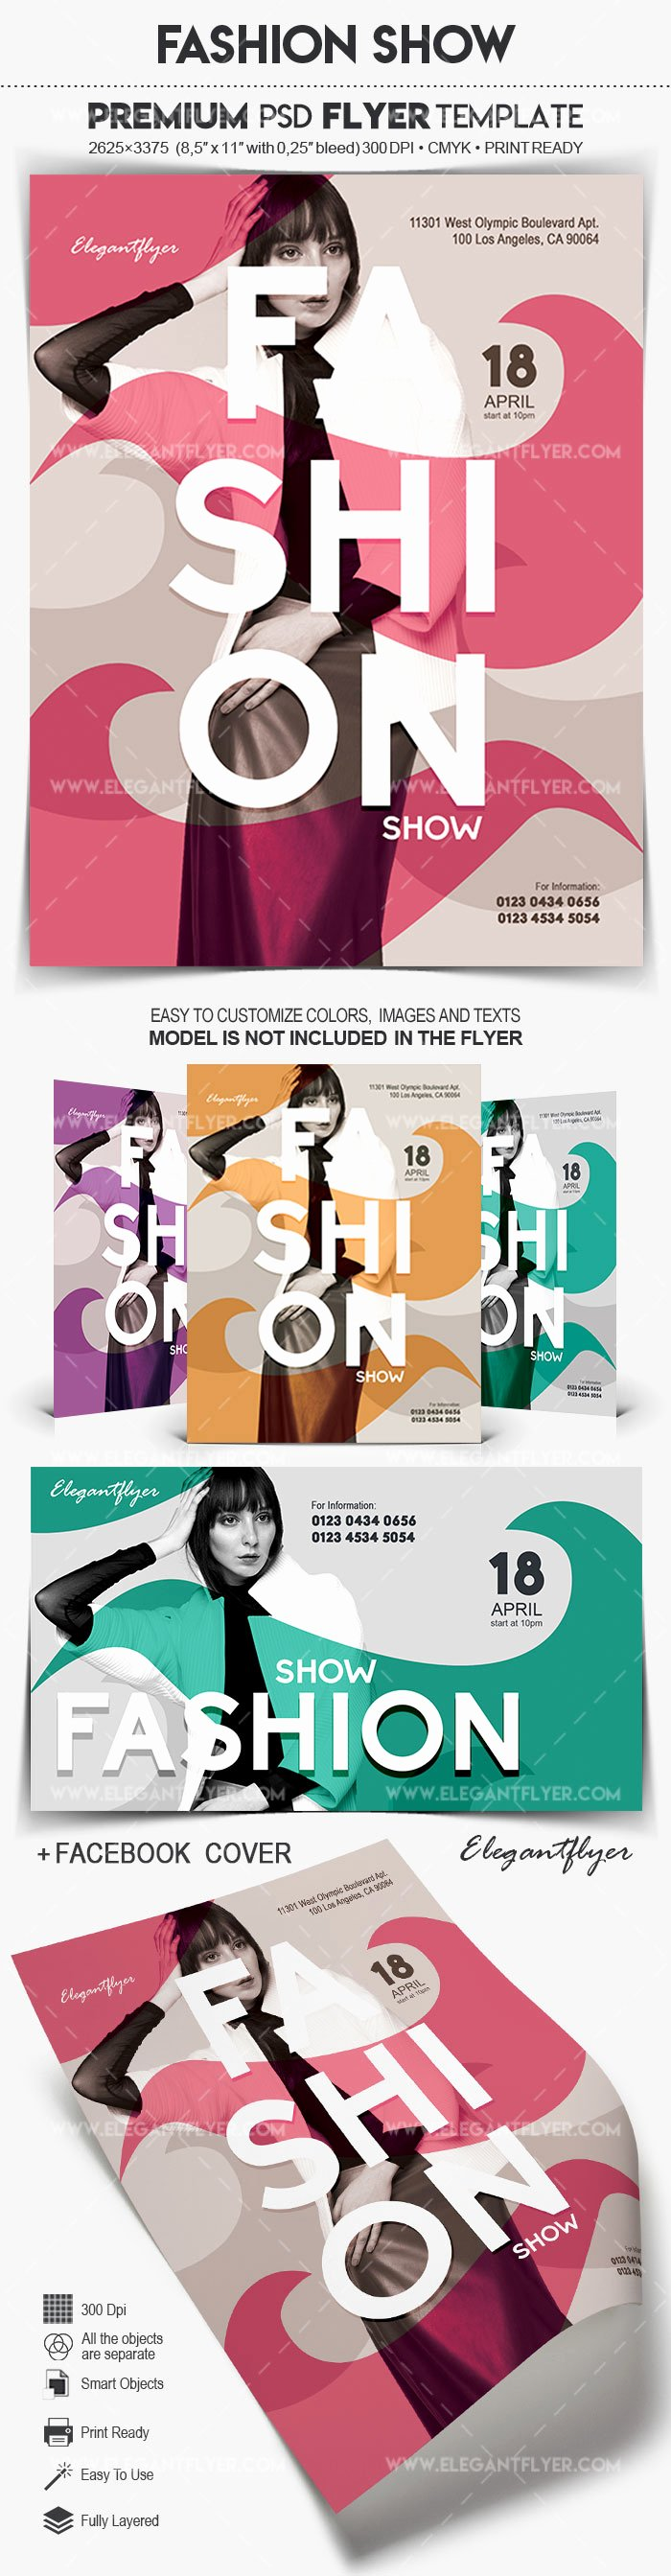 Fashion Show Flyer Template Best Of Fashion Show – Flyer Psd Template – by Elegantflyer